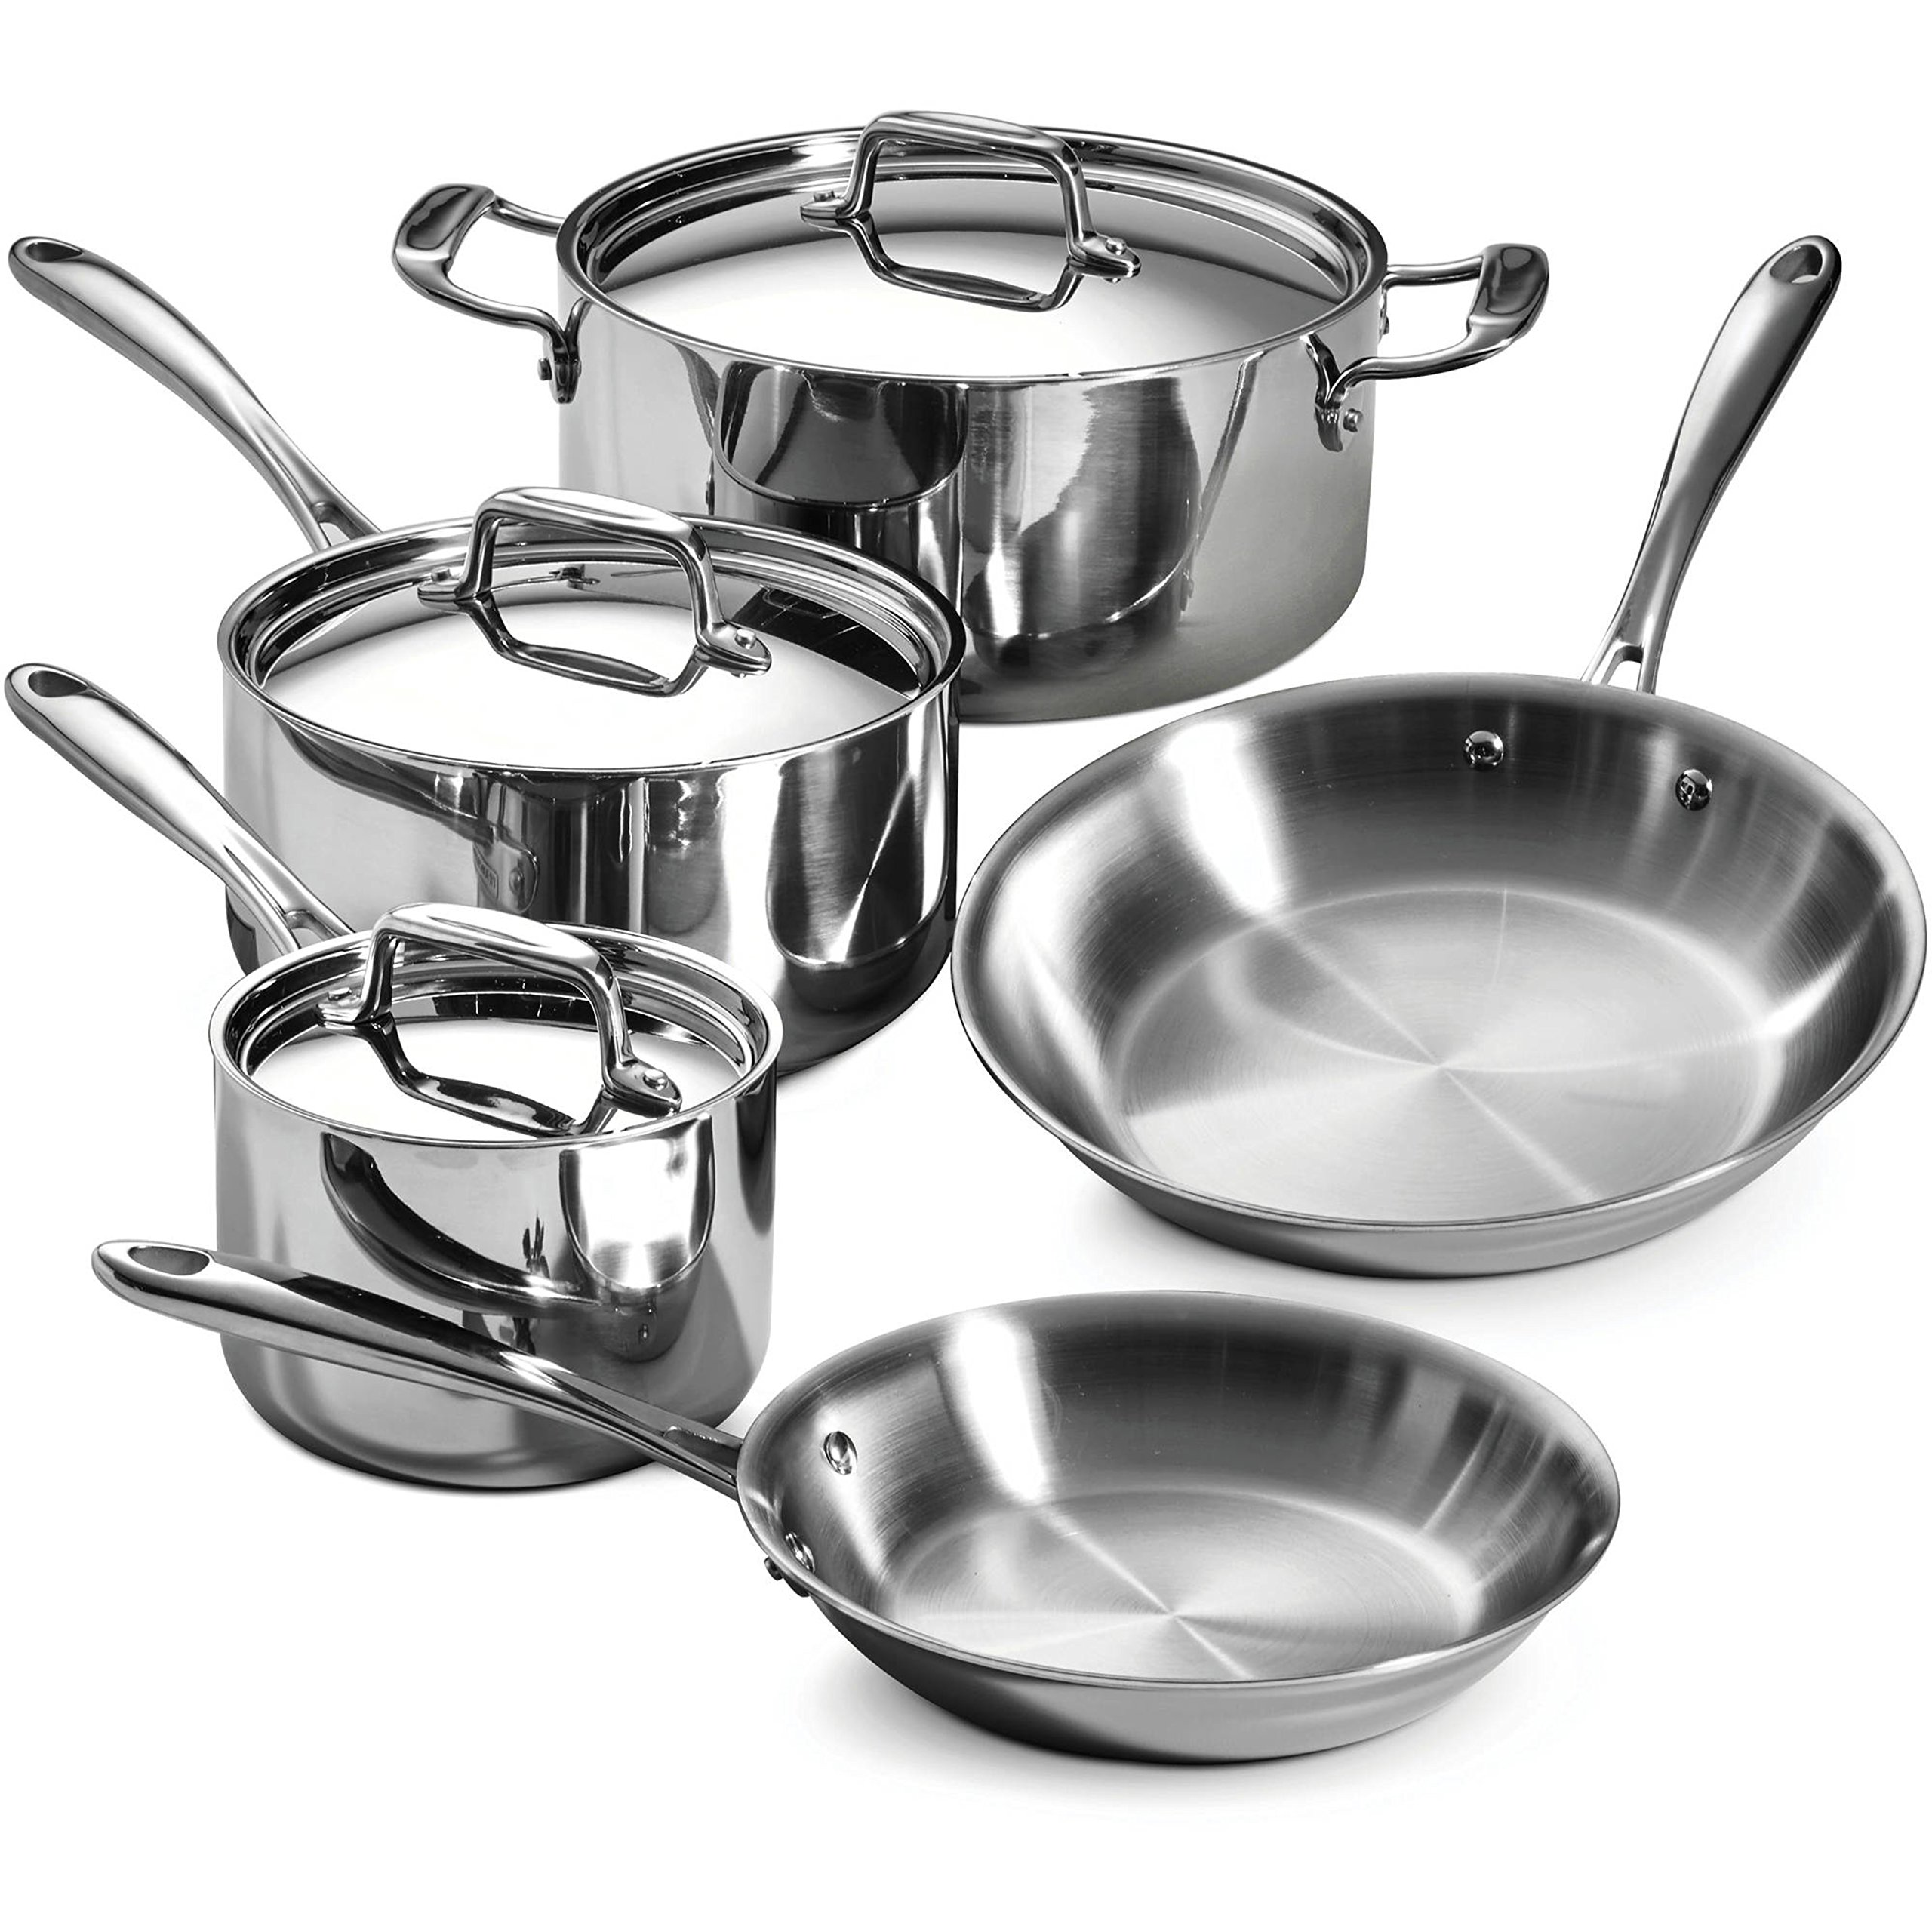 8-Piece Premium 18/10 Stainless Steel Tri-Ply Clad Cookware Set